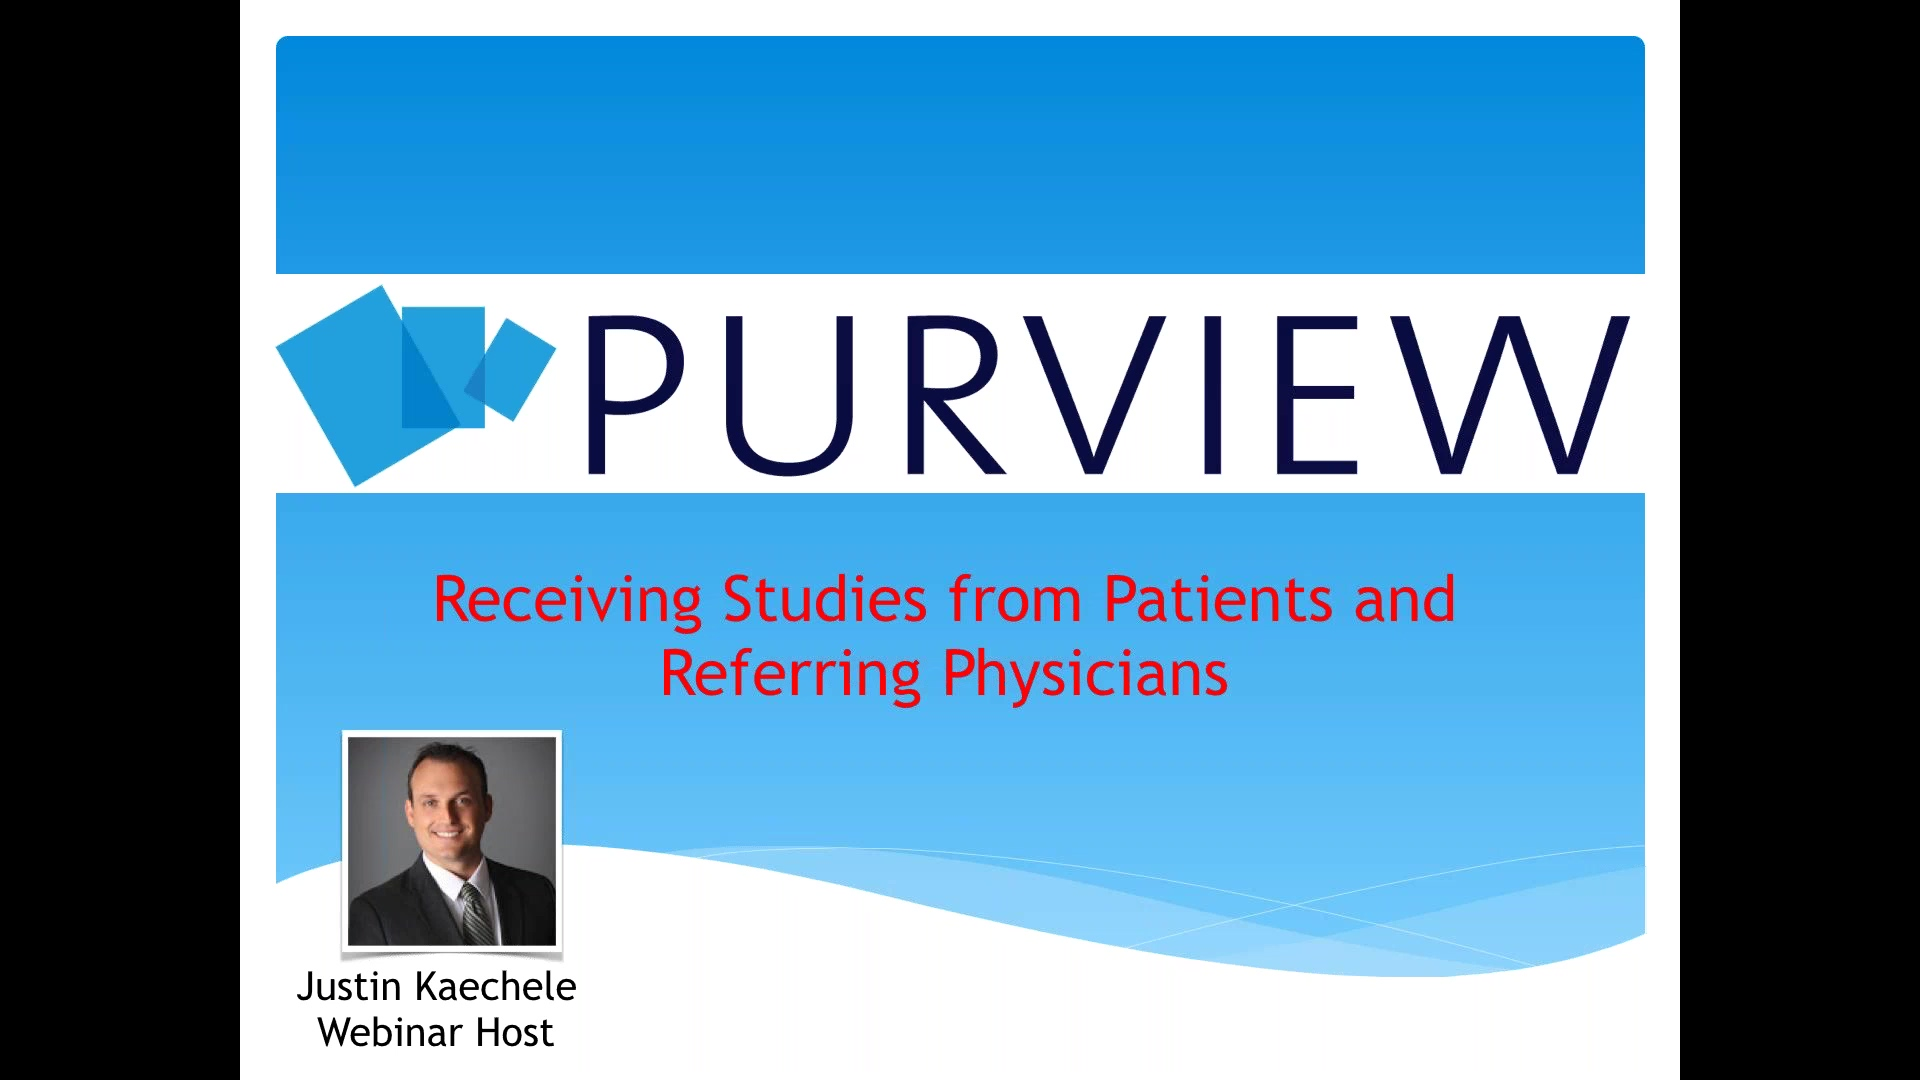 Micro Webinar Series- Receiving Studies from Patients and Referring Physicians